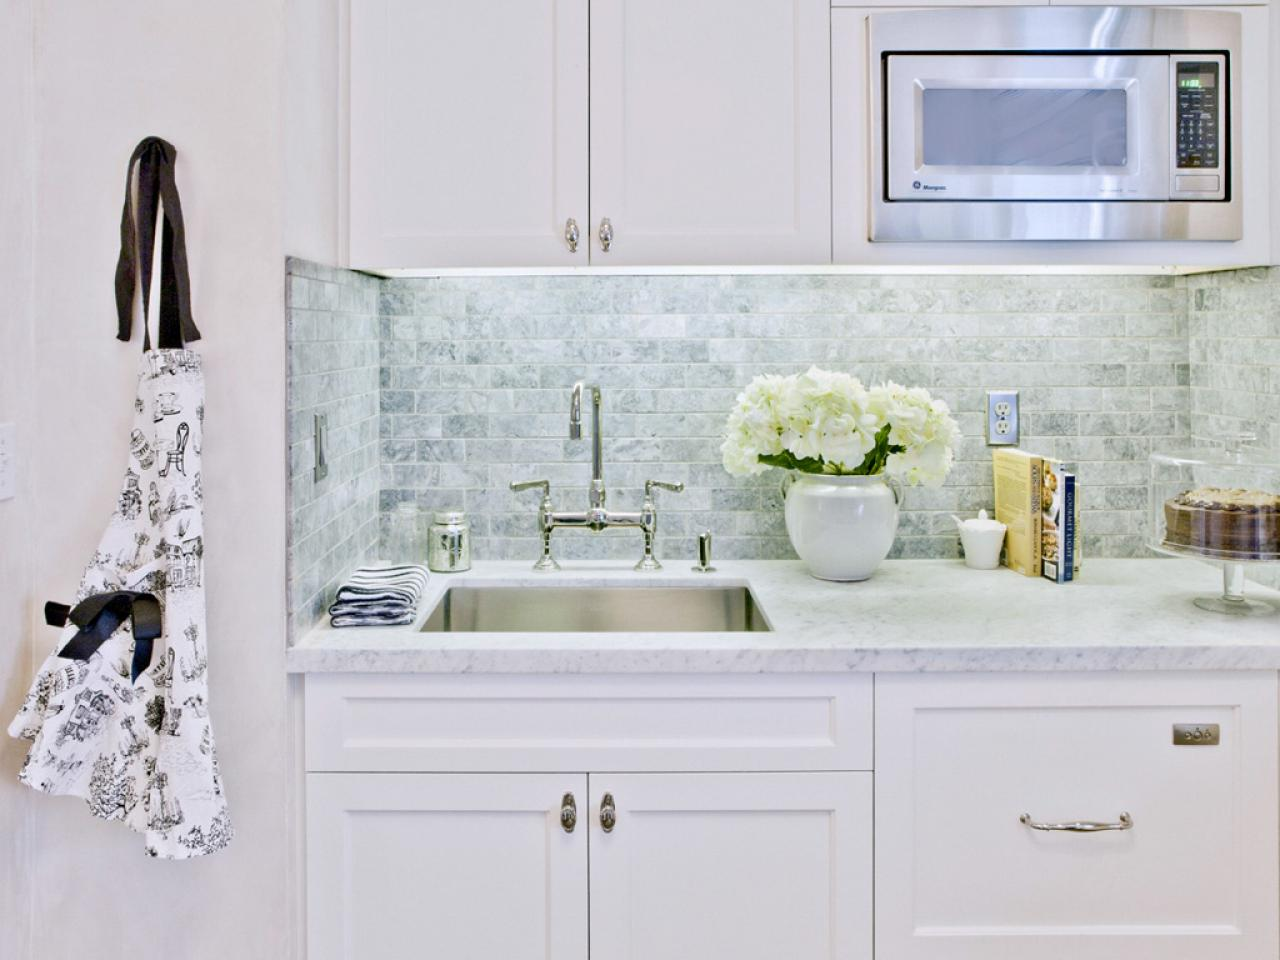 subway tile in kitchen backsplash picture